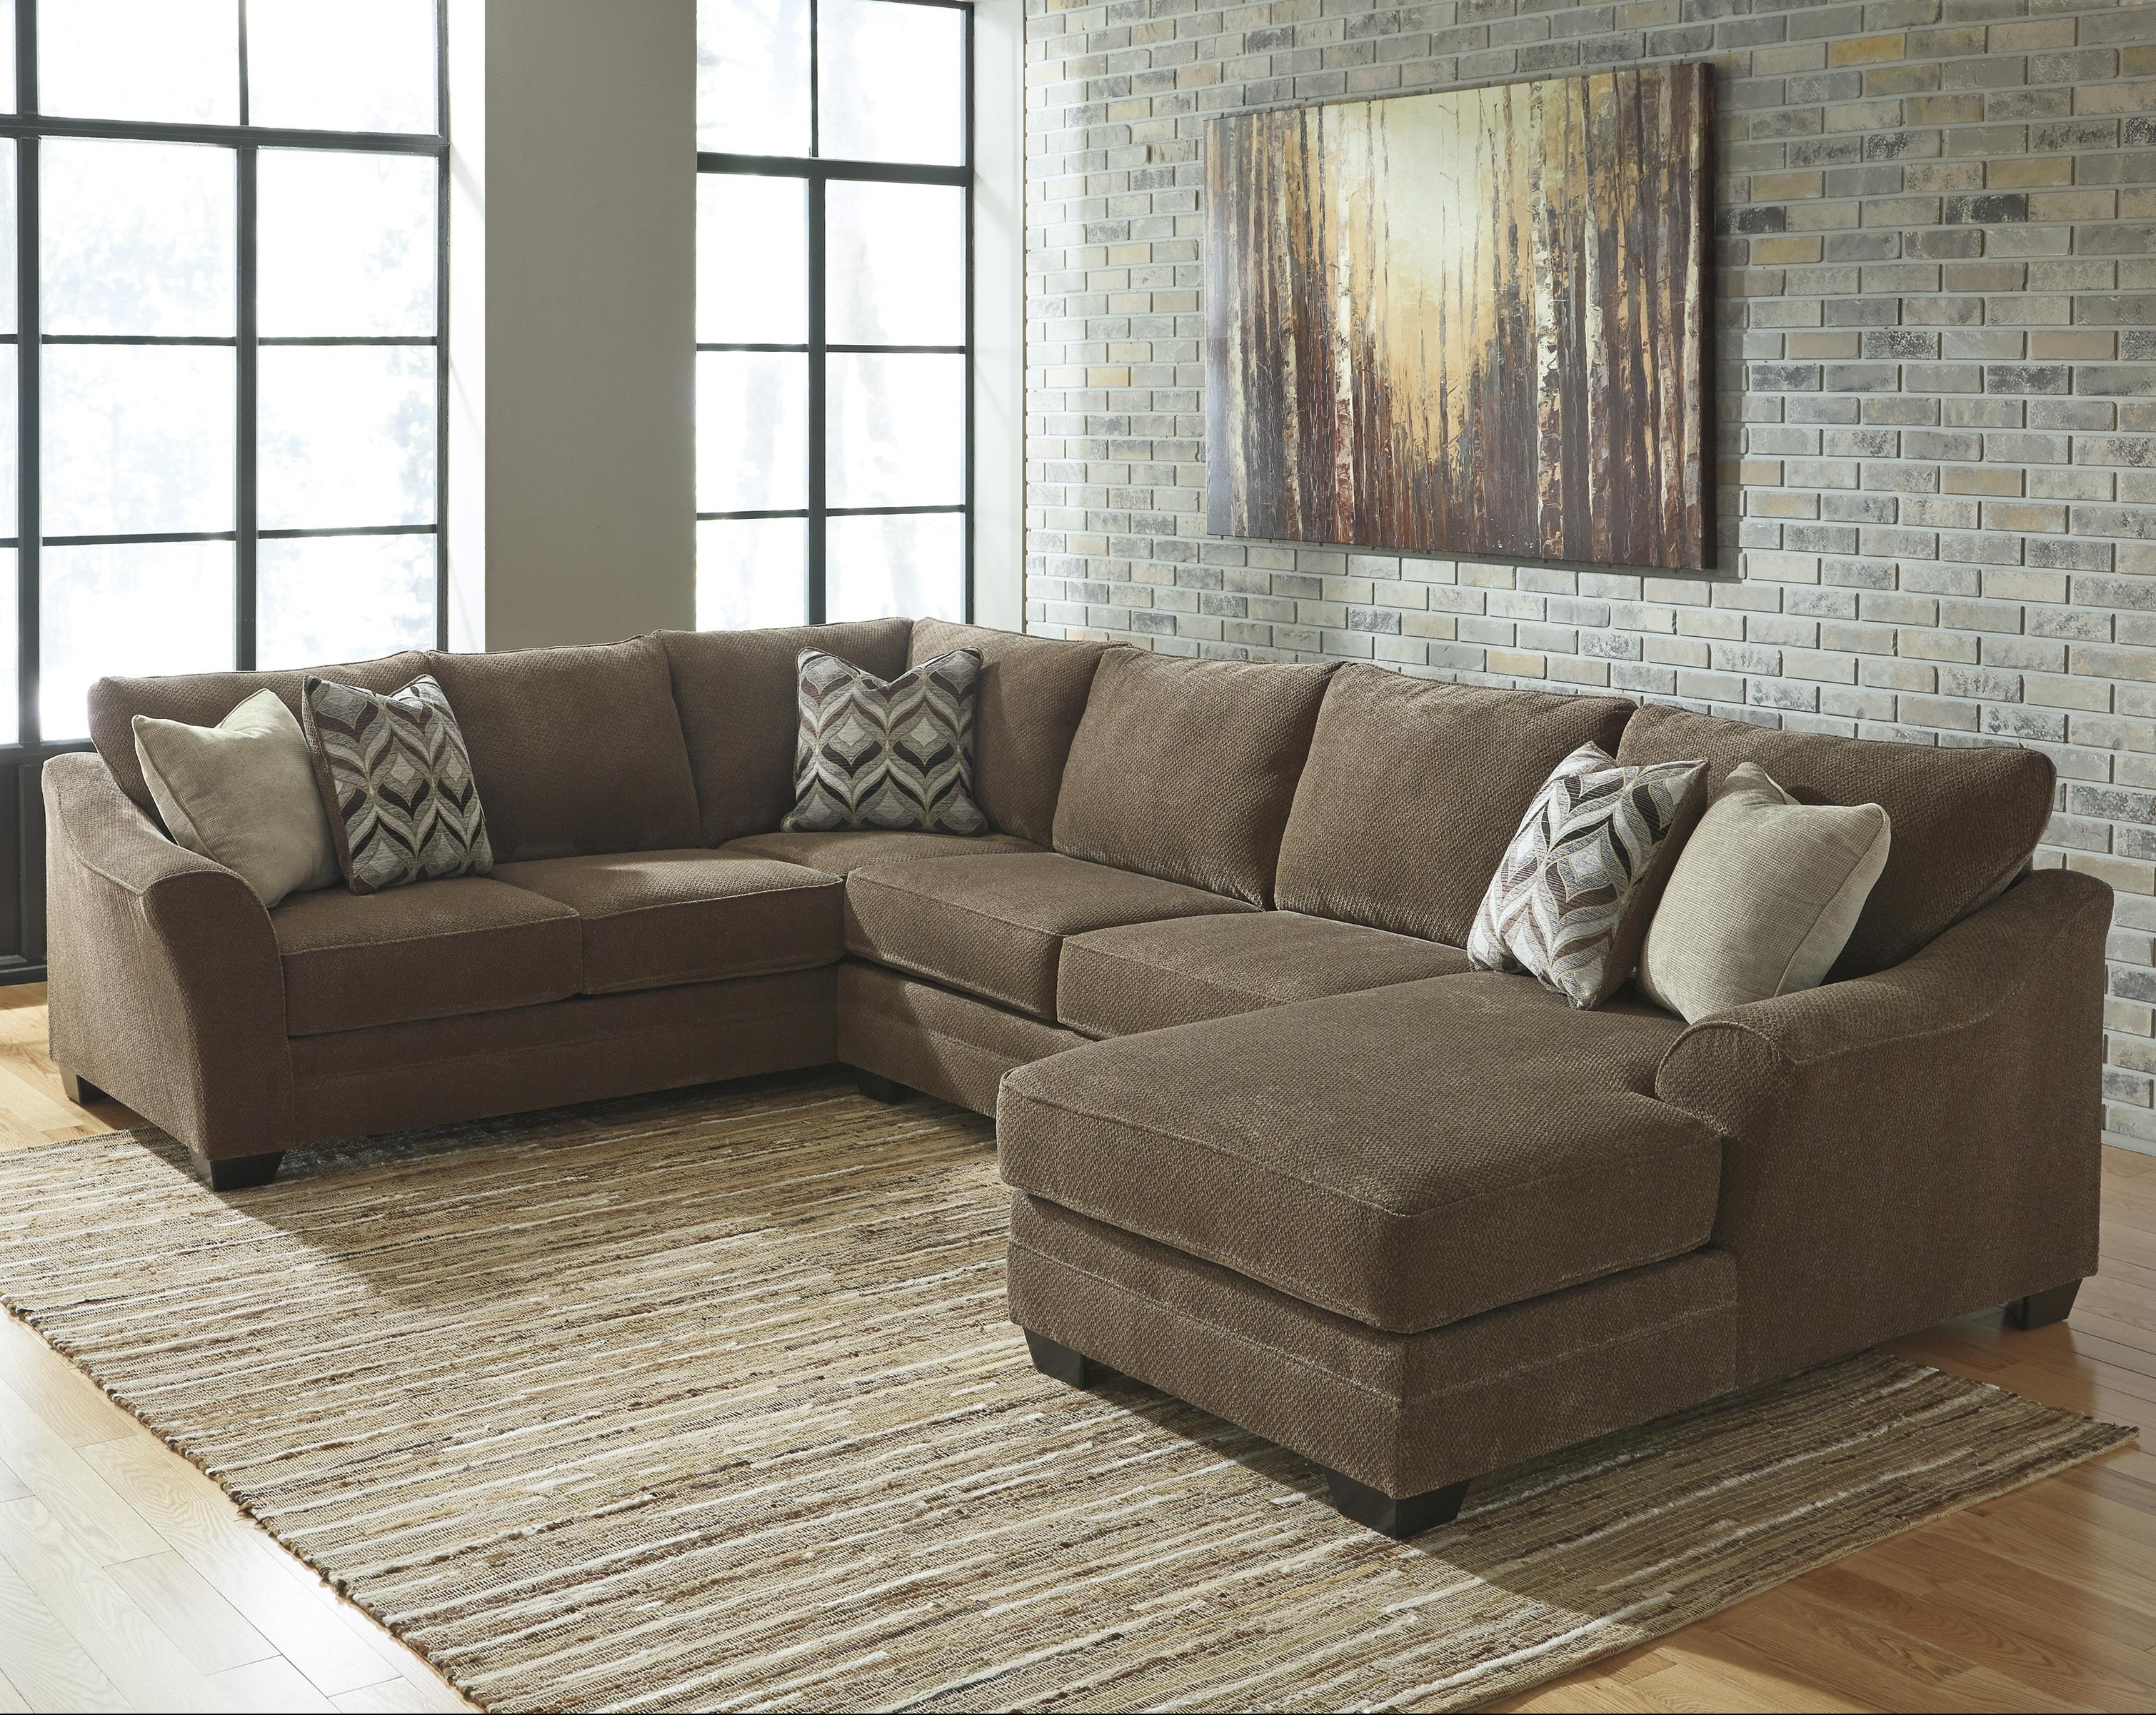 Left Chaise Sectionals With Regard To Newest Benchcraft Justyna Contemporary 3 Piece Sectional With Left Chaise (View 9 of 15)